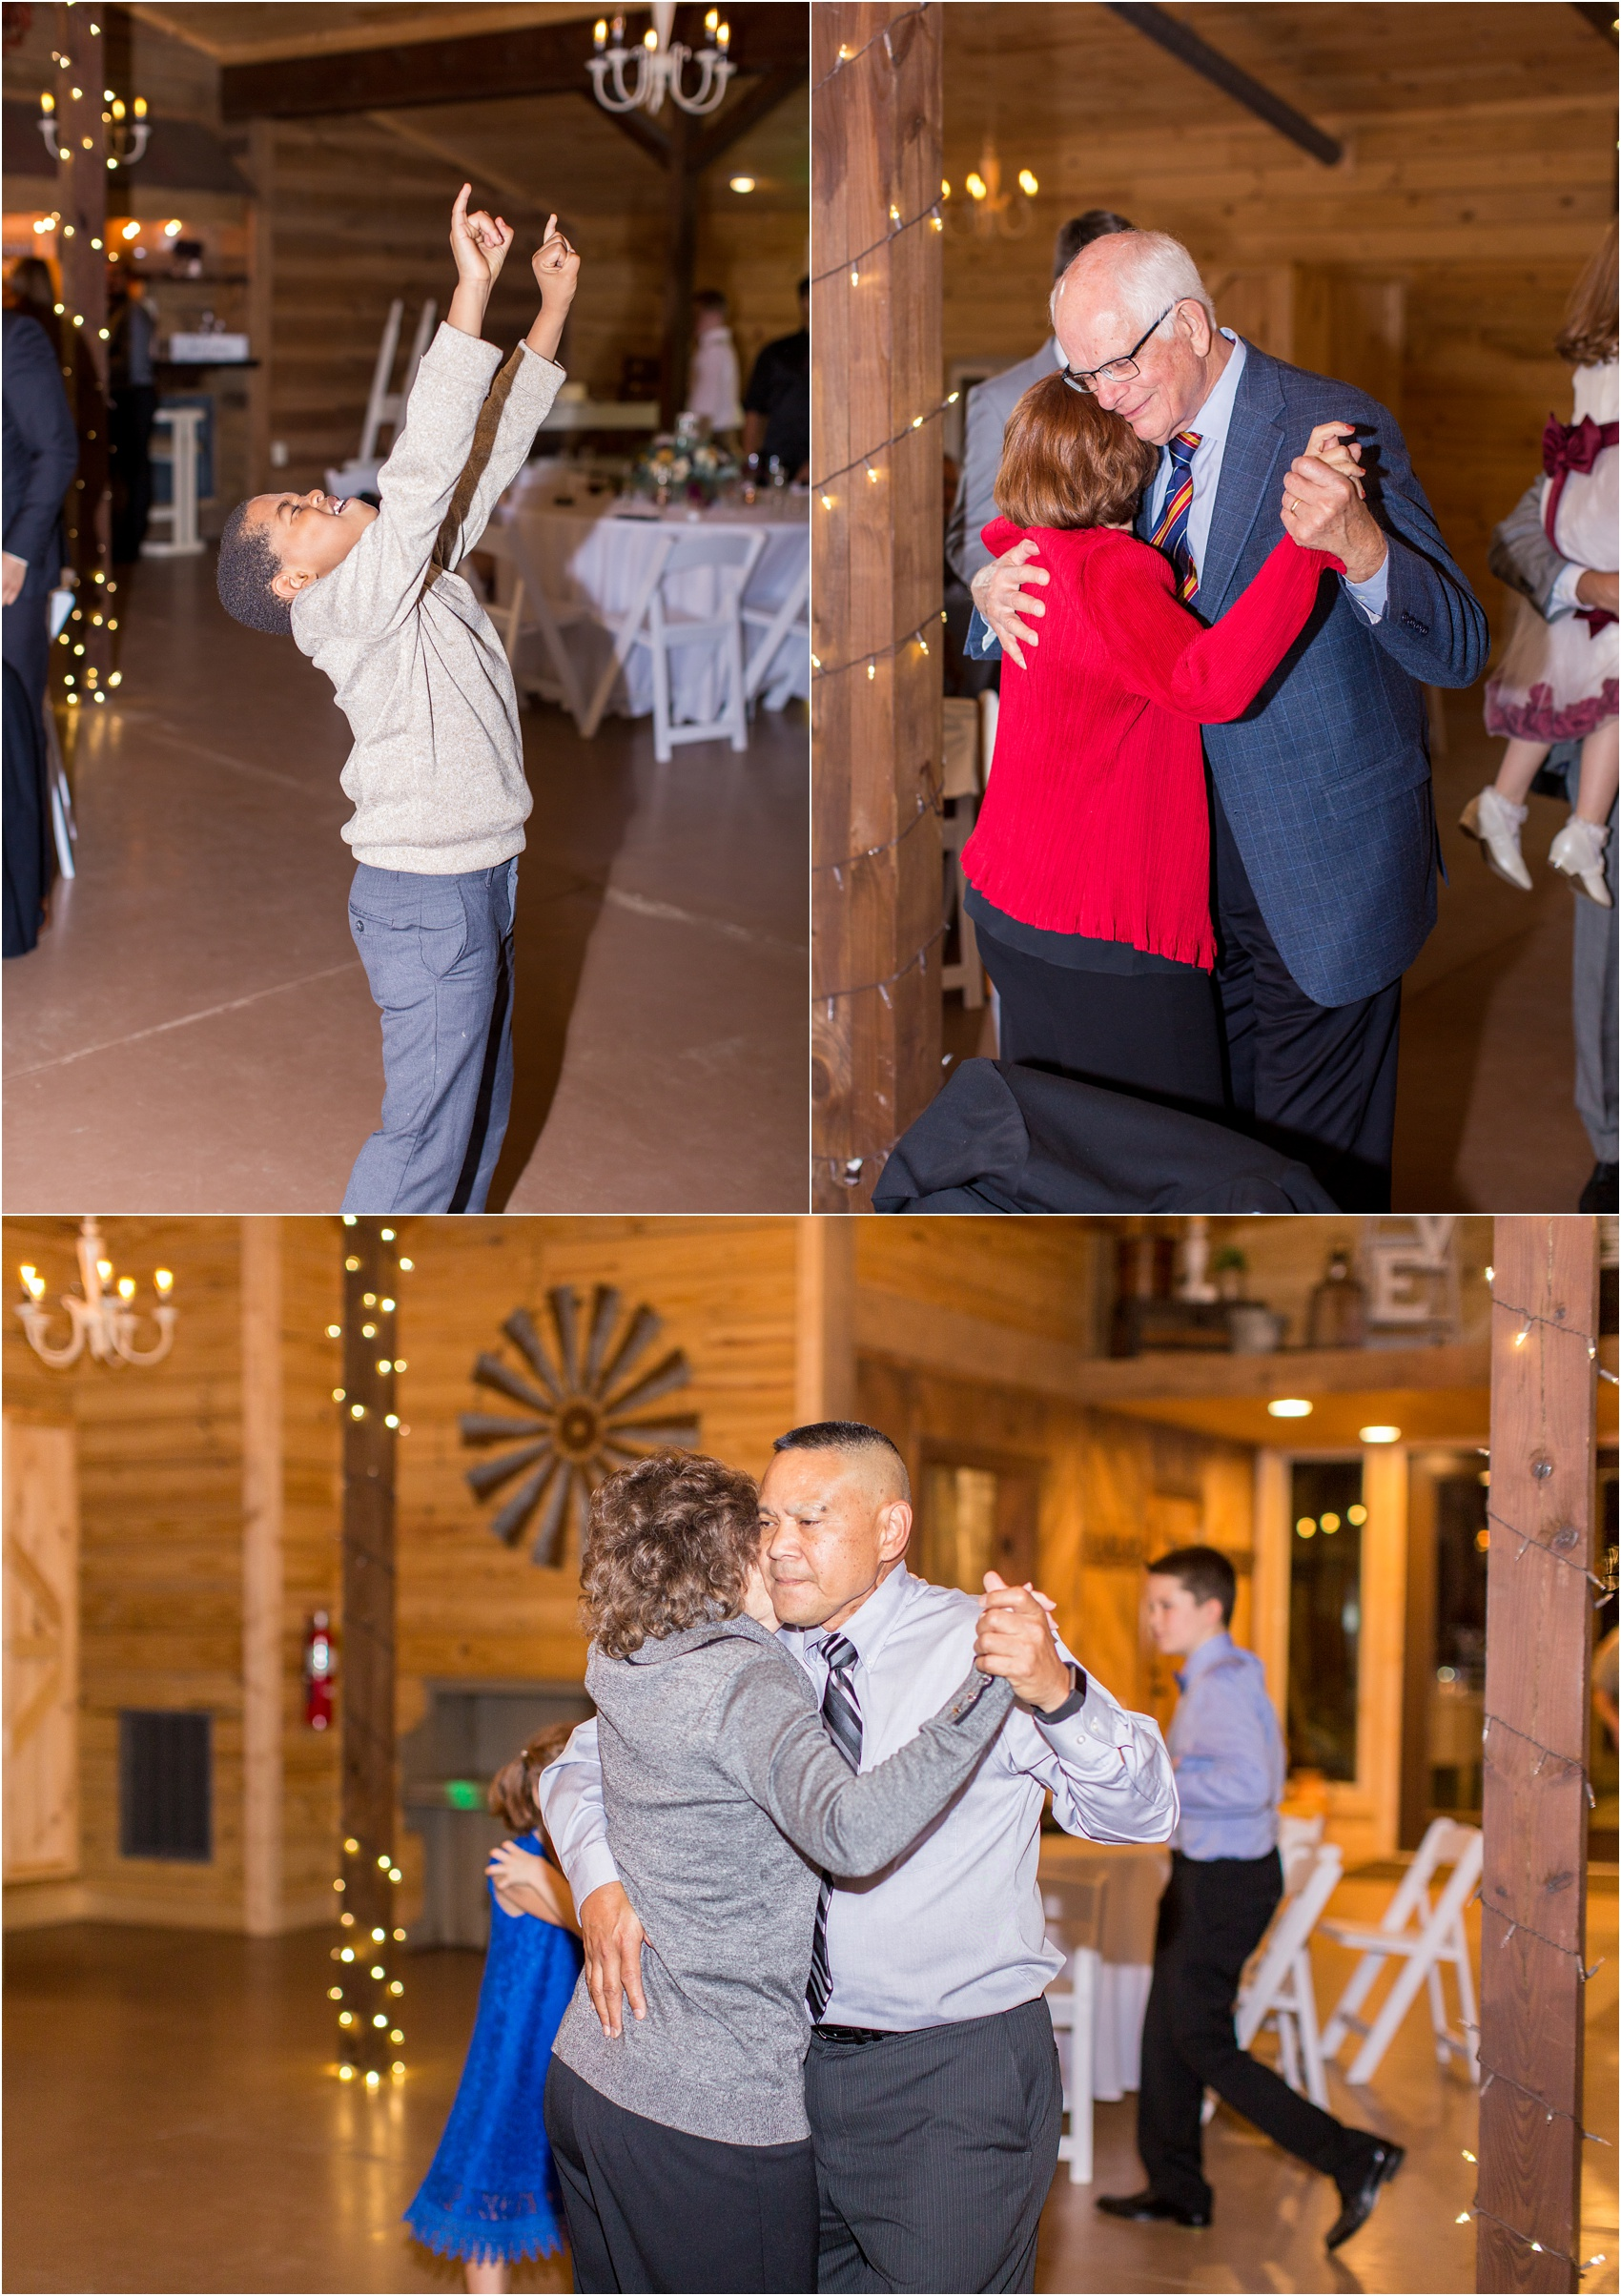 Savannah Eve Photography- McGeary-Epp Wedding- Sneak Peek-116.jpg